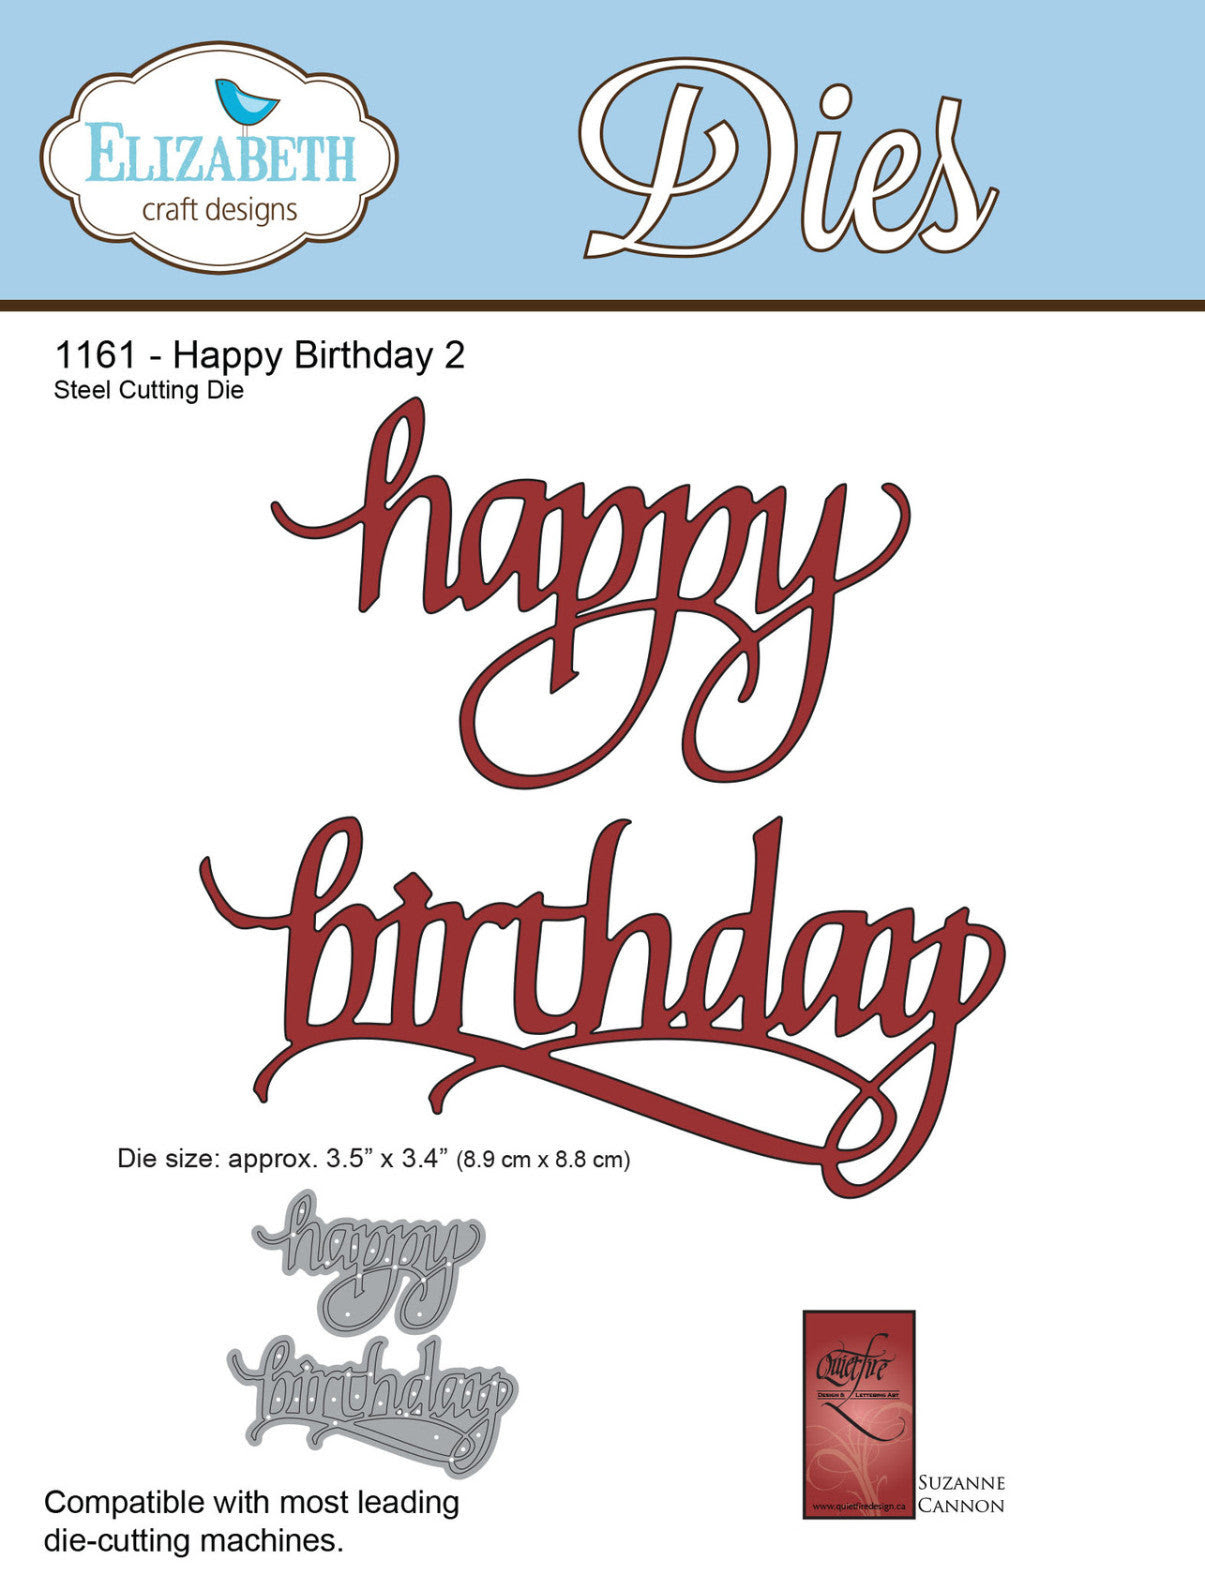 http://www.elizabethcraftdesigns.com/products/a-way-with-words-happy-birthday-2-1161